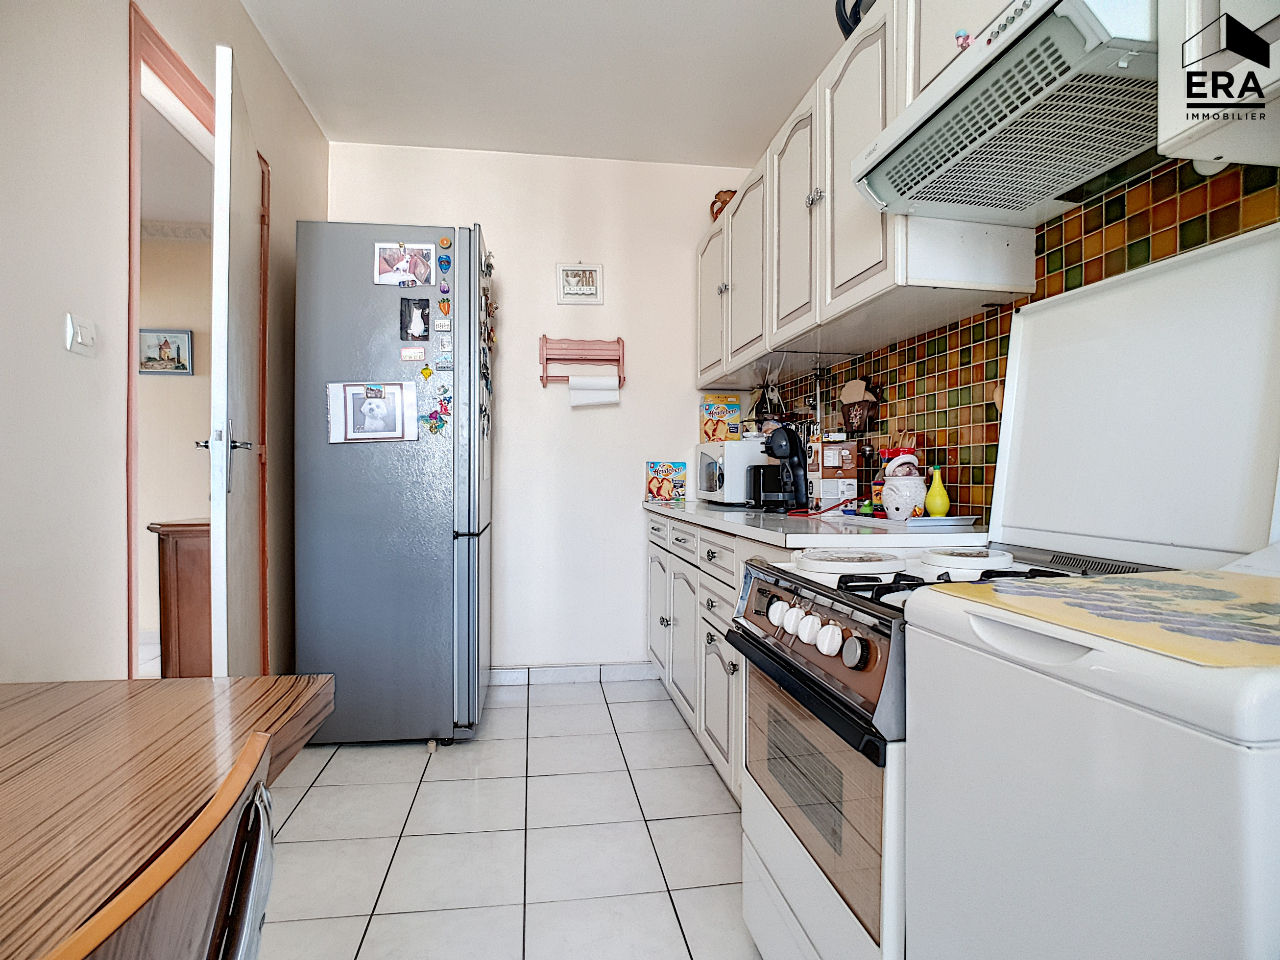 A VENDRE APPARTEMENT 3 PIECES AVEC PARKING MARSEILLE 13014 ST JOSEPH